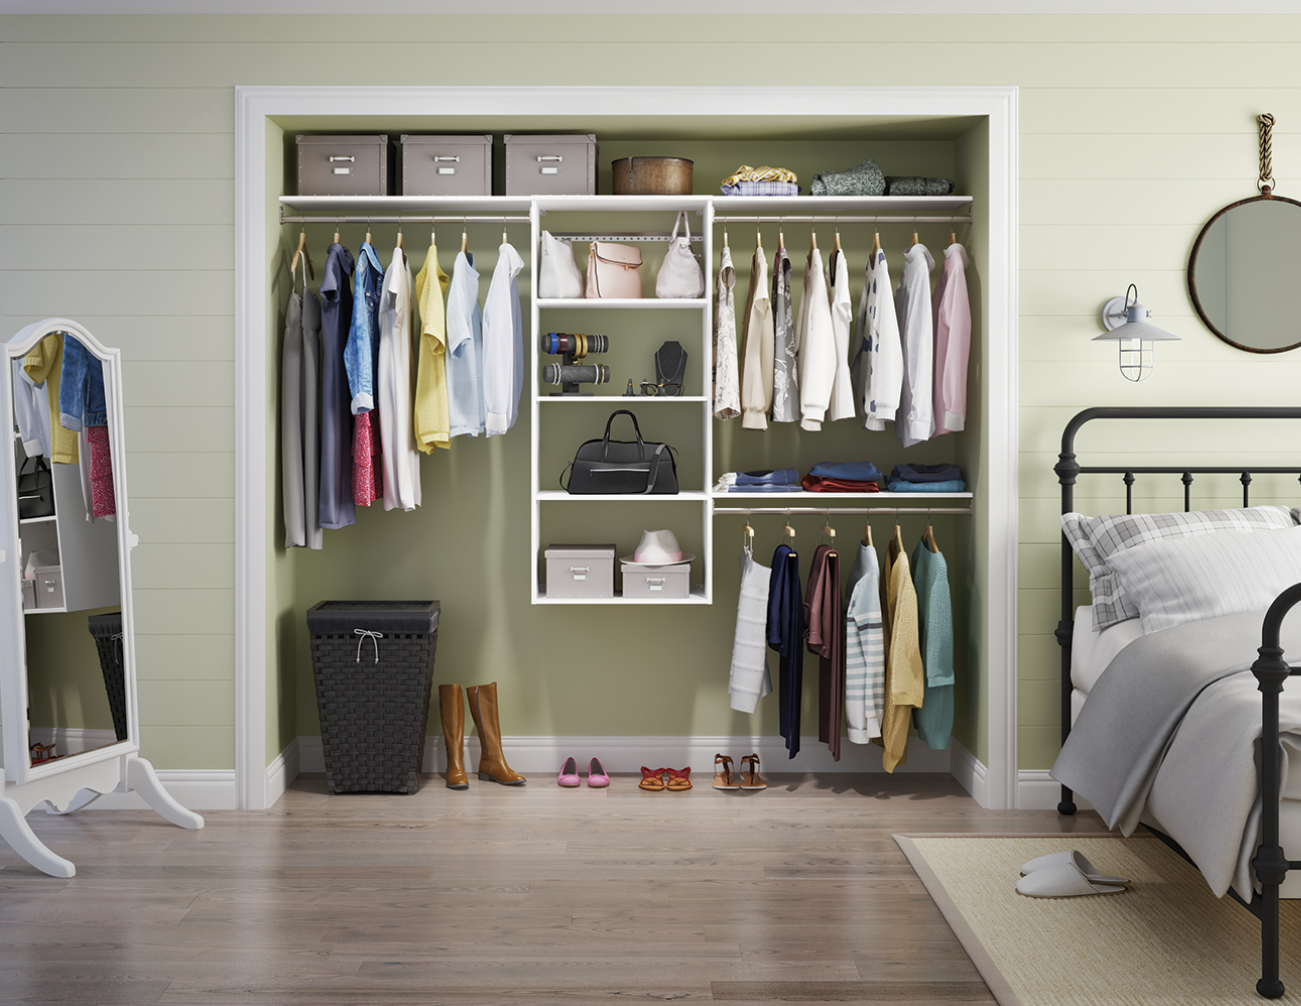 Create More Storage Space On The Closet Floor For Hampers And Shoe  Organizers With A Wall